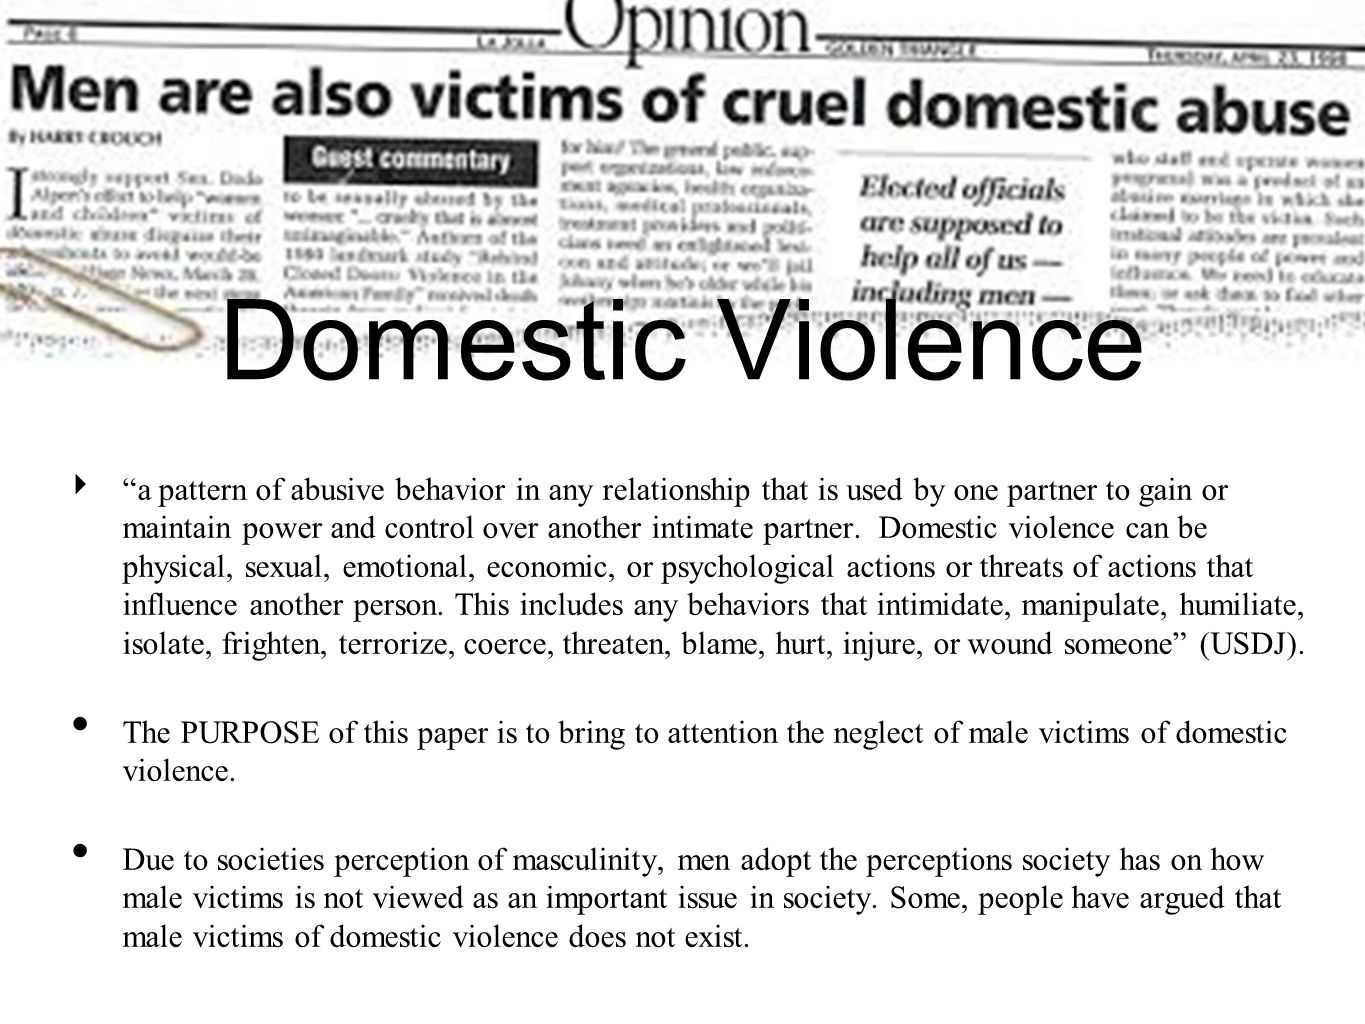 Domestic Violence a pattern of abusive behavior in any relationship that is used by one partner to gain or maintain power and control over another int